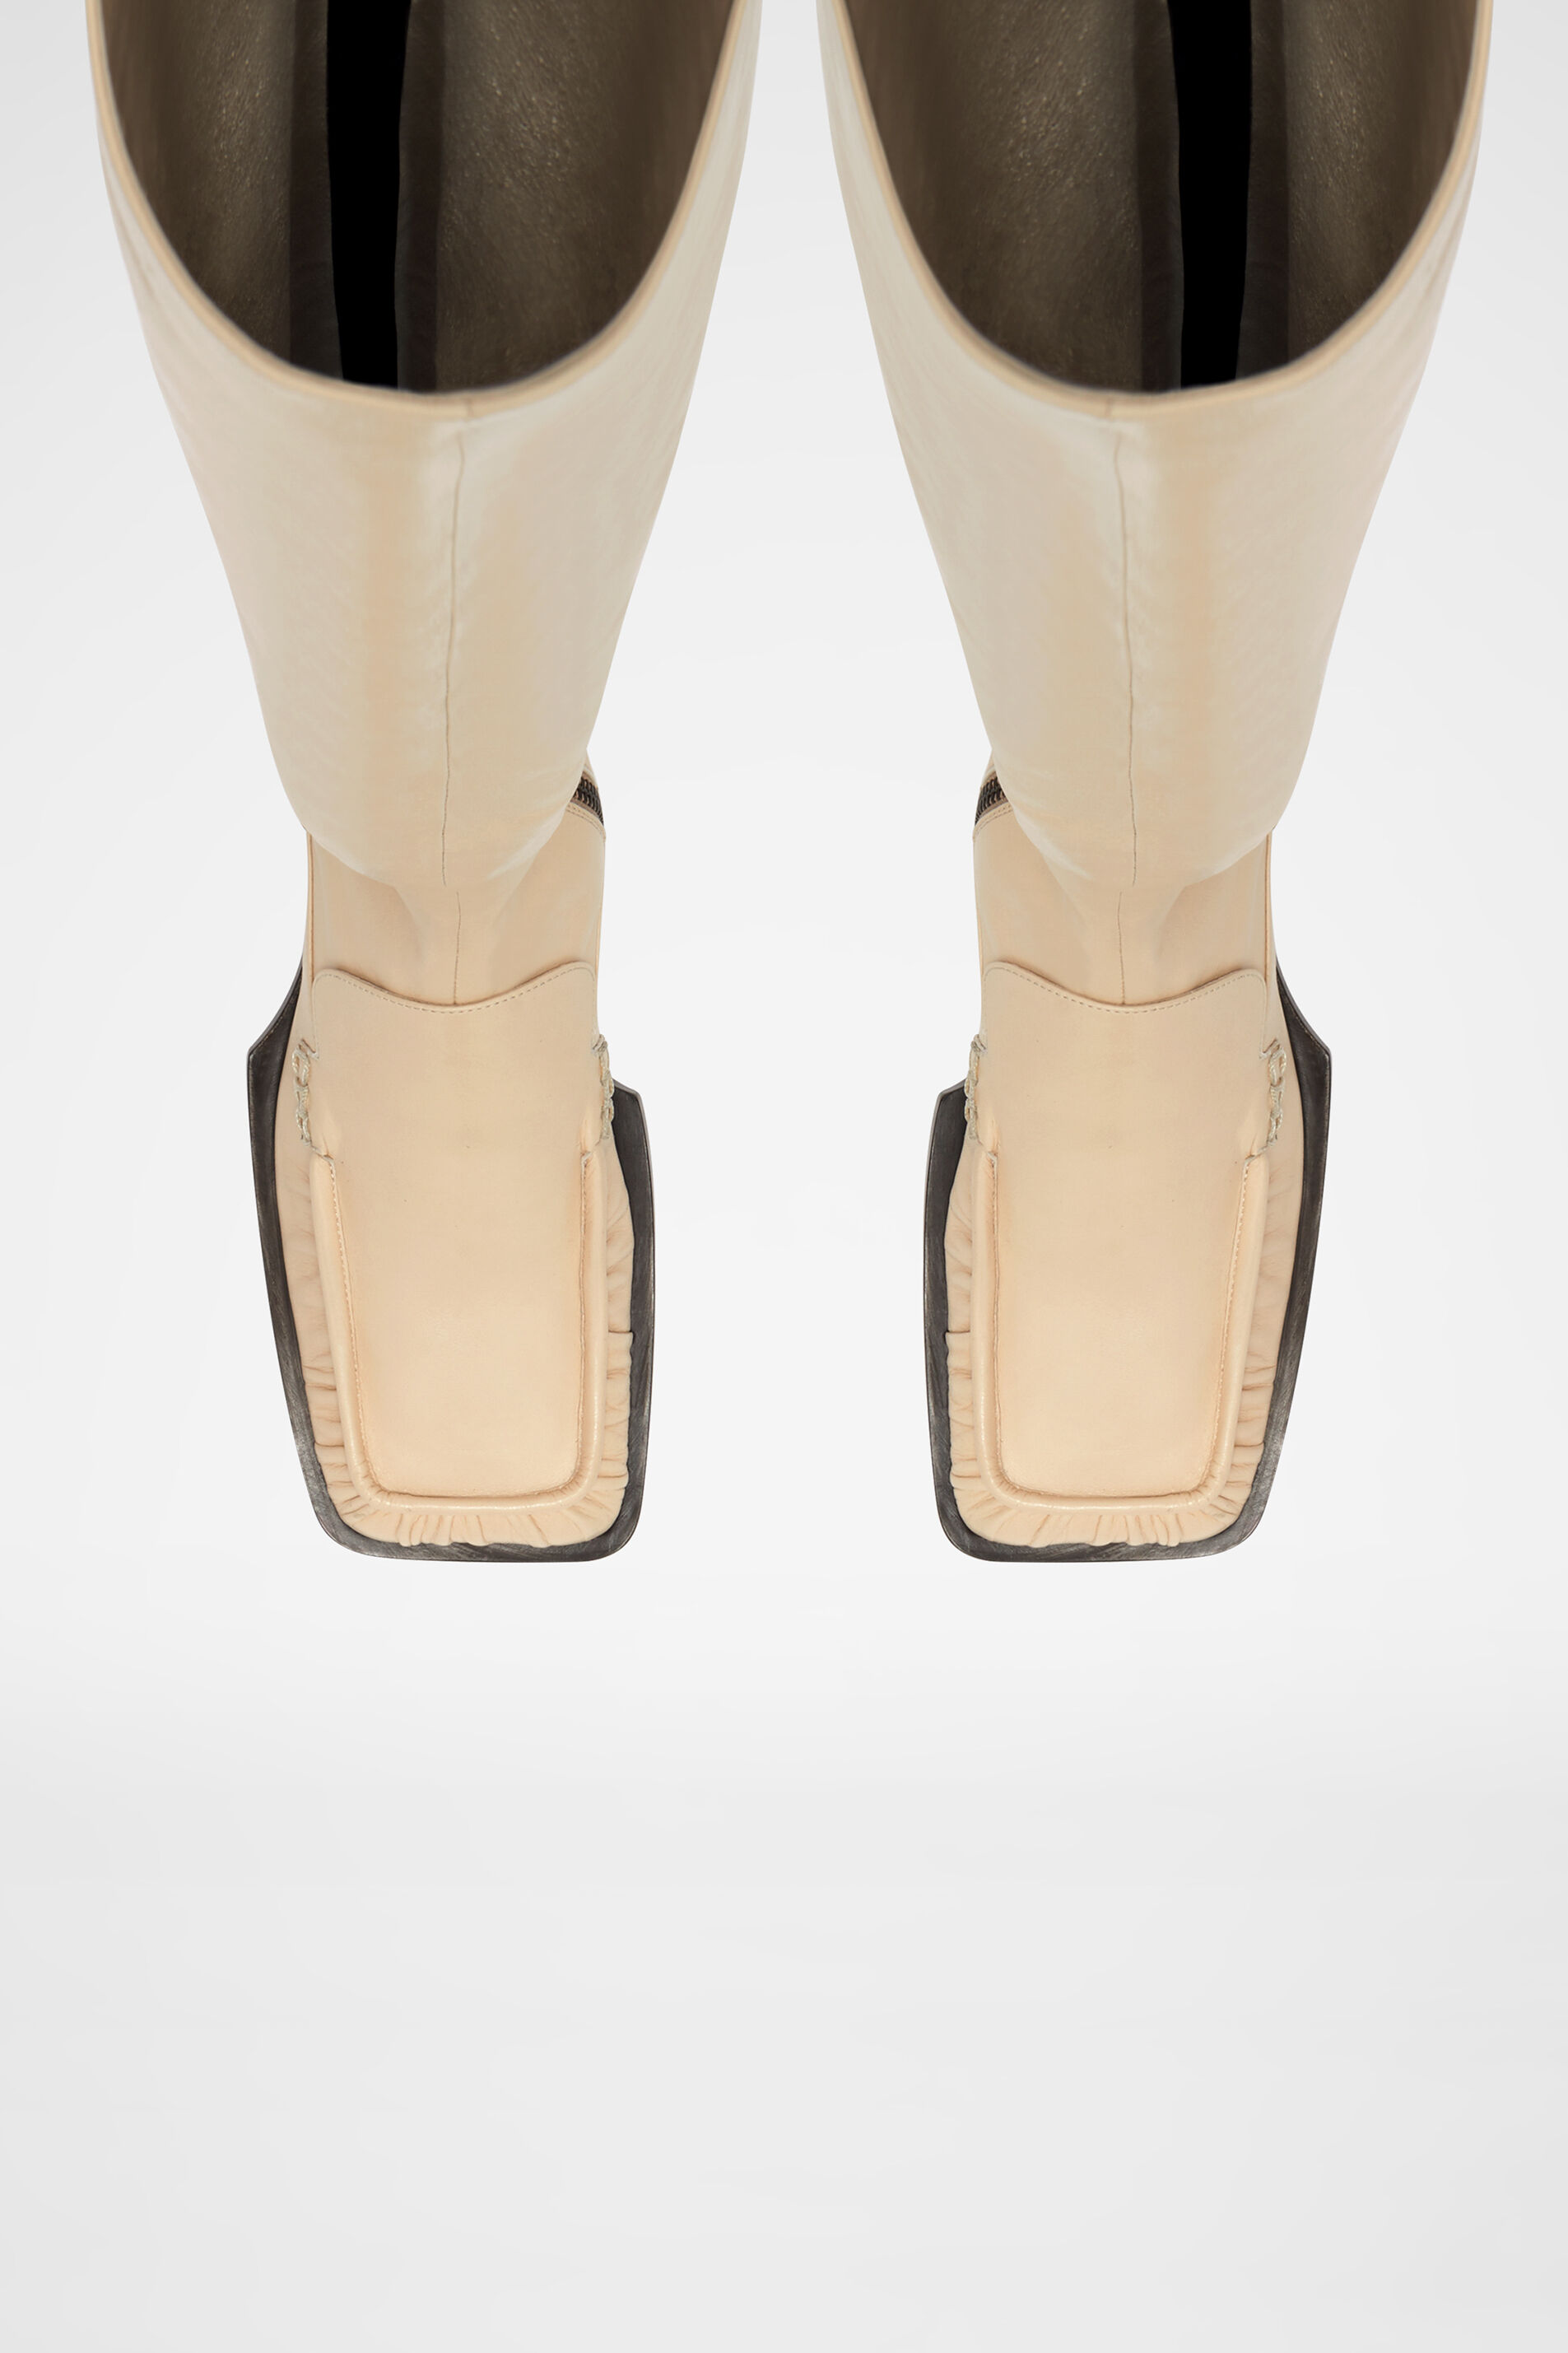 Boots, natural, large